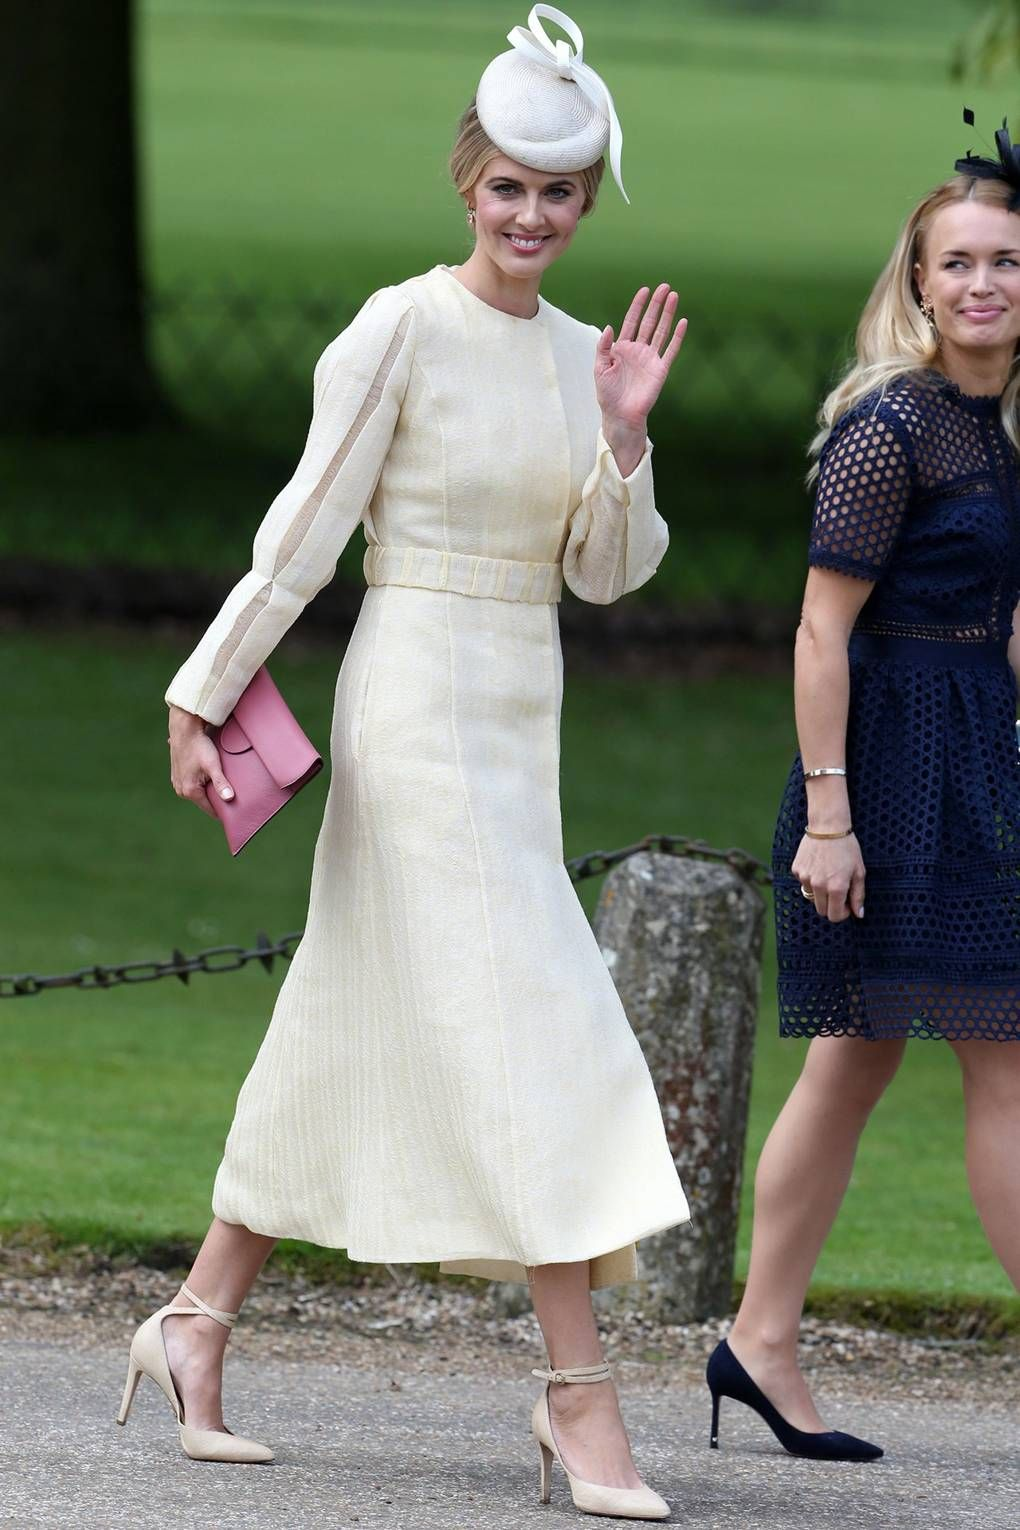 The Best Dressed Celebrity Wedding Guests Of 2018 Wedding Guest Dress Pippa Middleton Wedding Dress Wedding Dress Trends